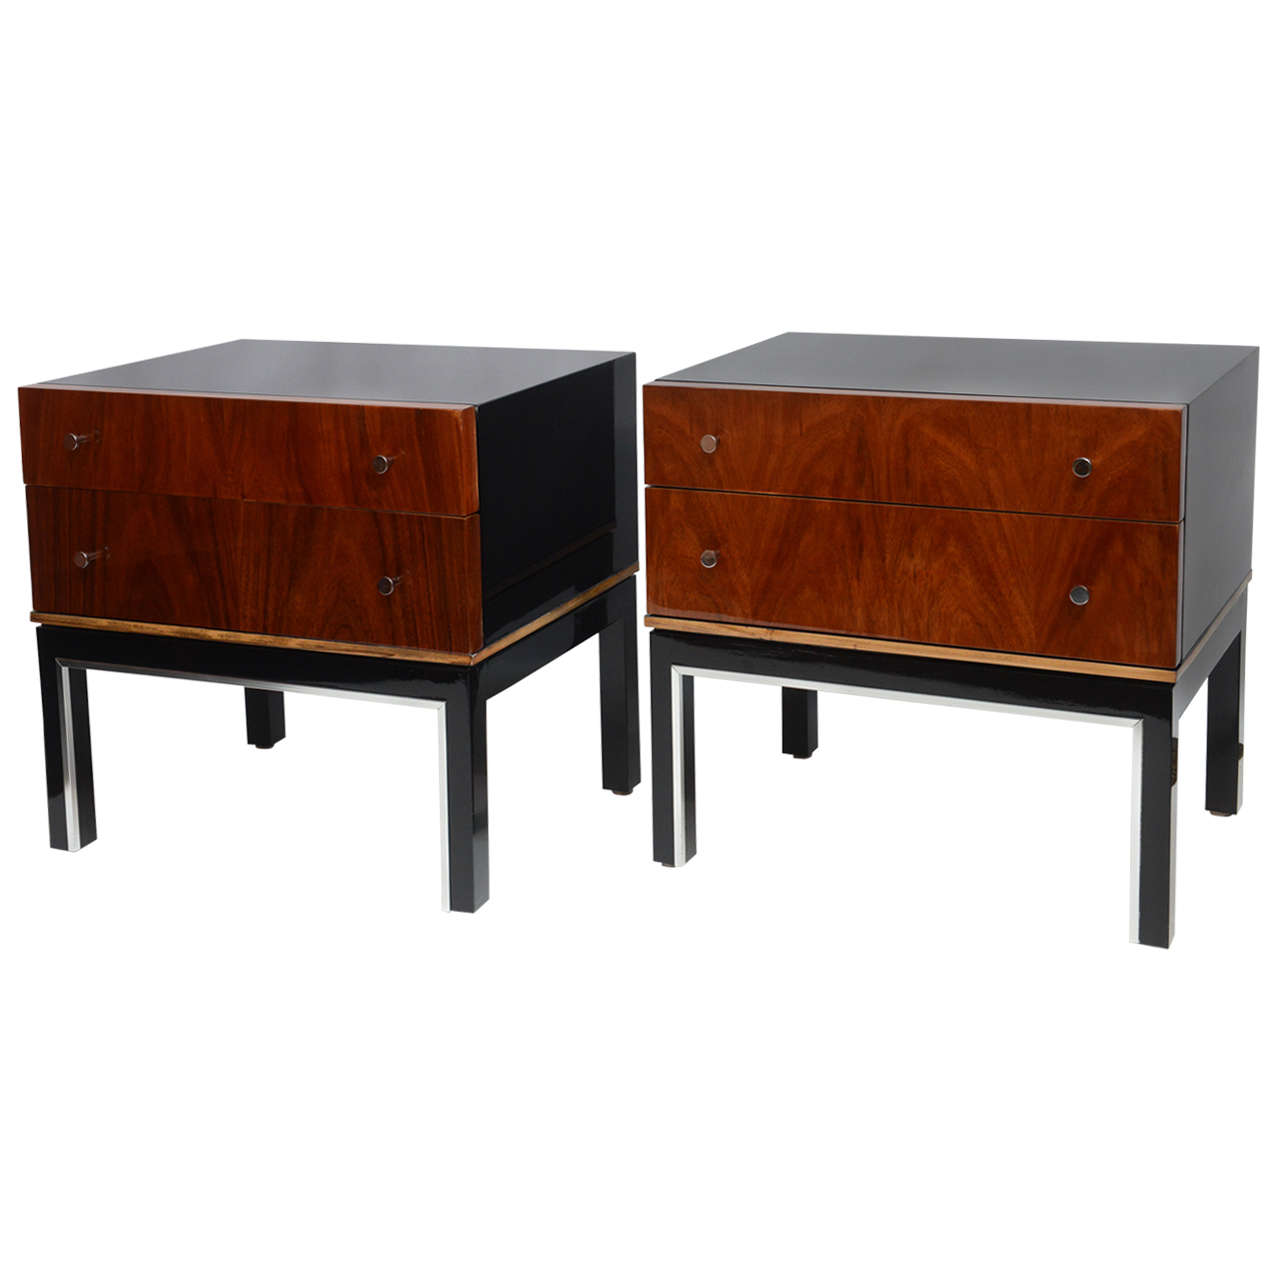 and walnut nightstands by american of martinsville at 1stdibs